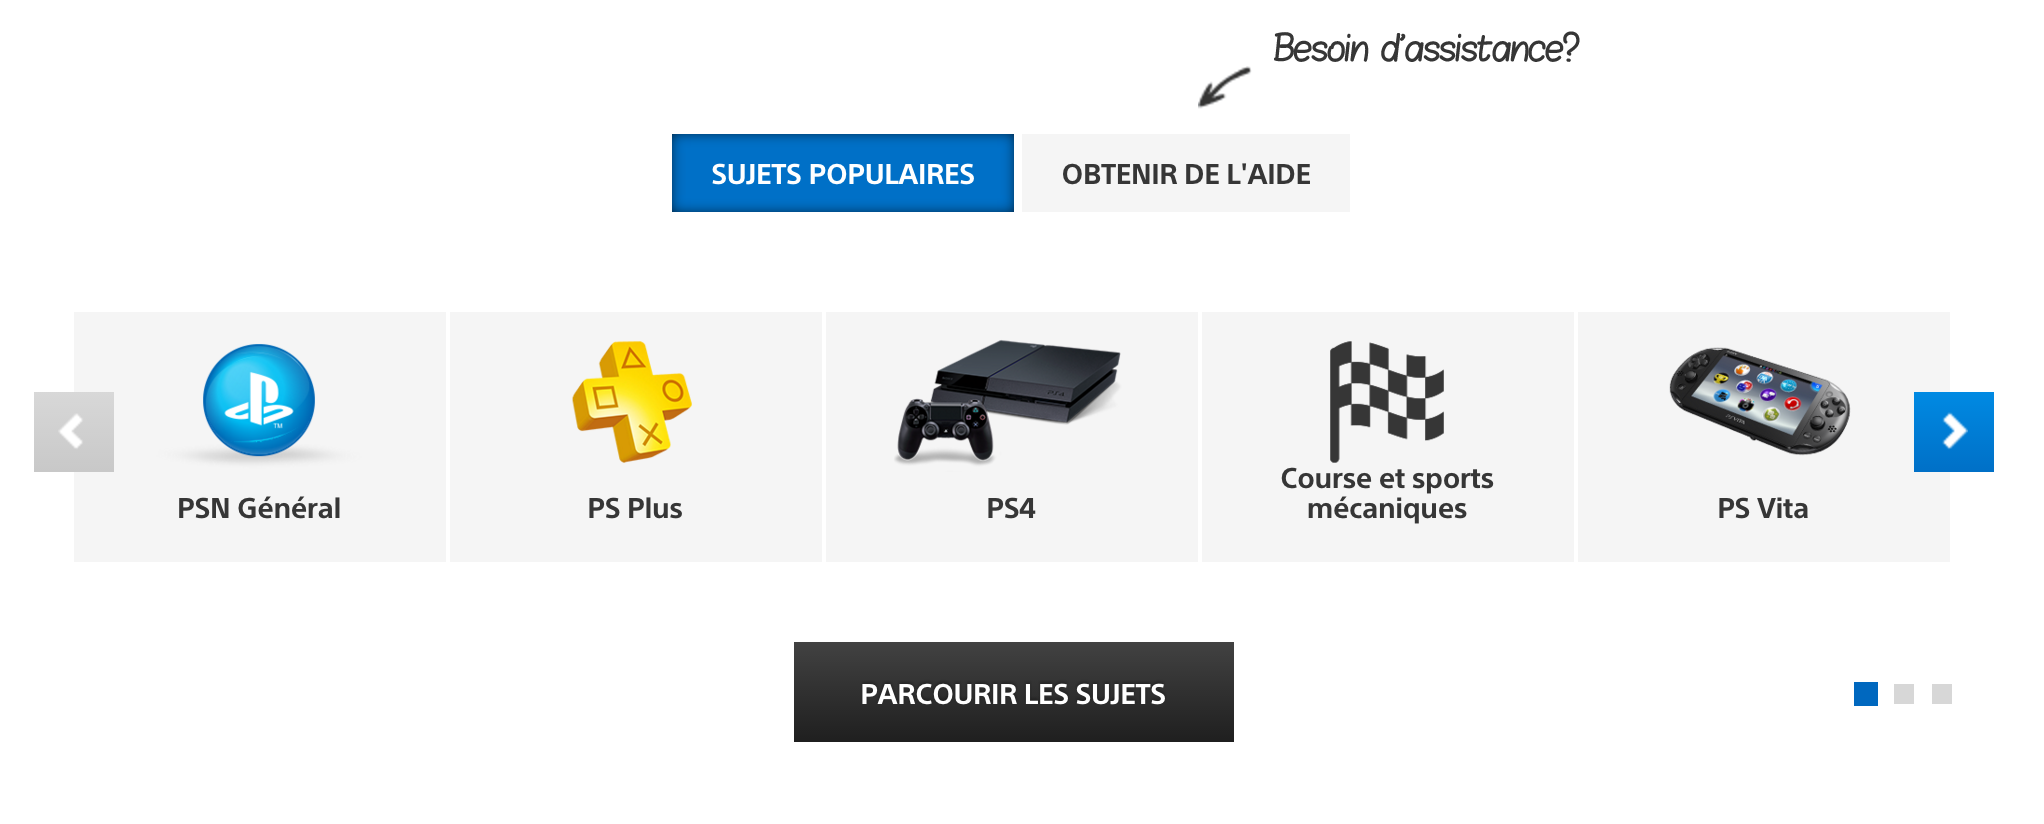 Aperçu du forum et Assistance Playstation